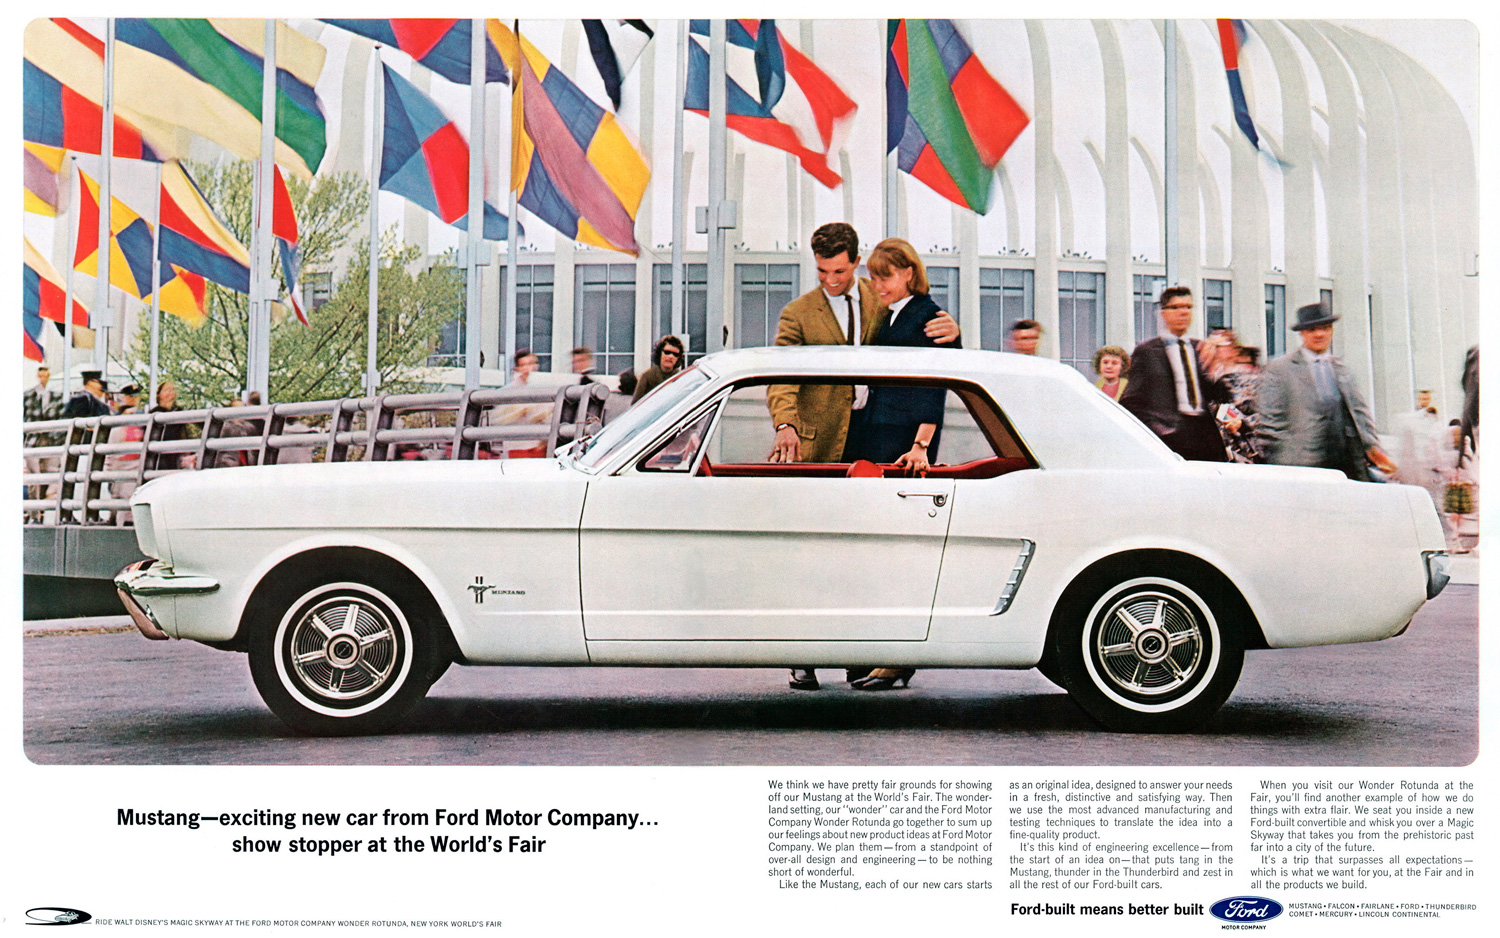 High Resolution Wallpaper | 1964 Ford Mustang 1500x938 px